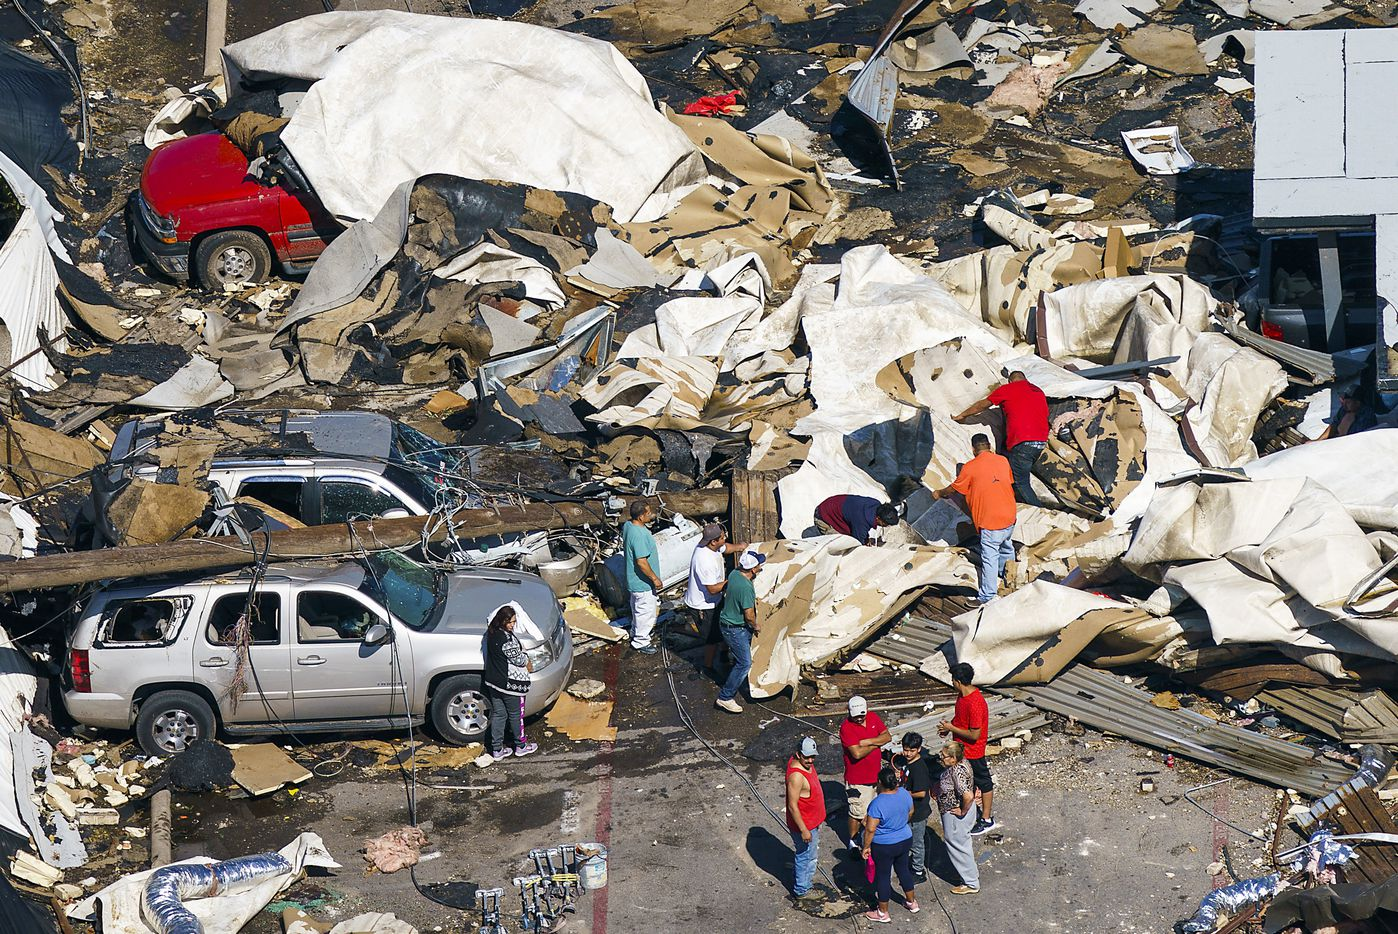 People pick through the rubble left by a tornado near Walnut HIll Lane and Denton Drive on Monday, Oct. 21, 2019, in Dallas.